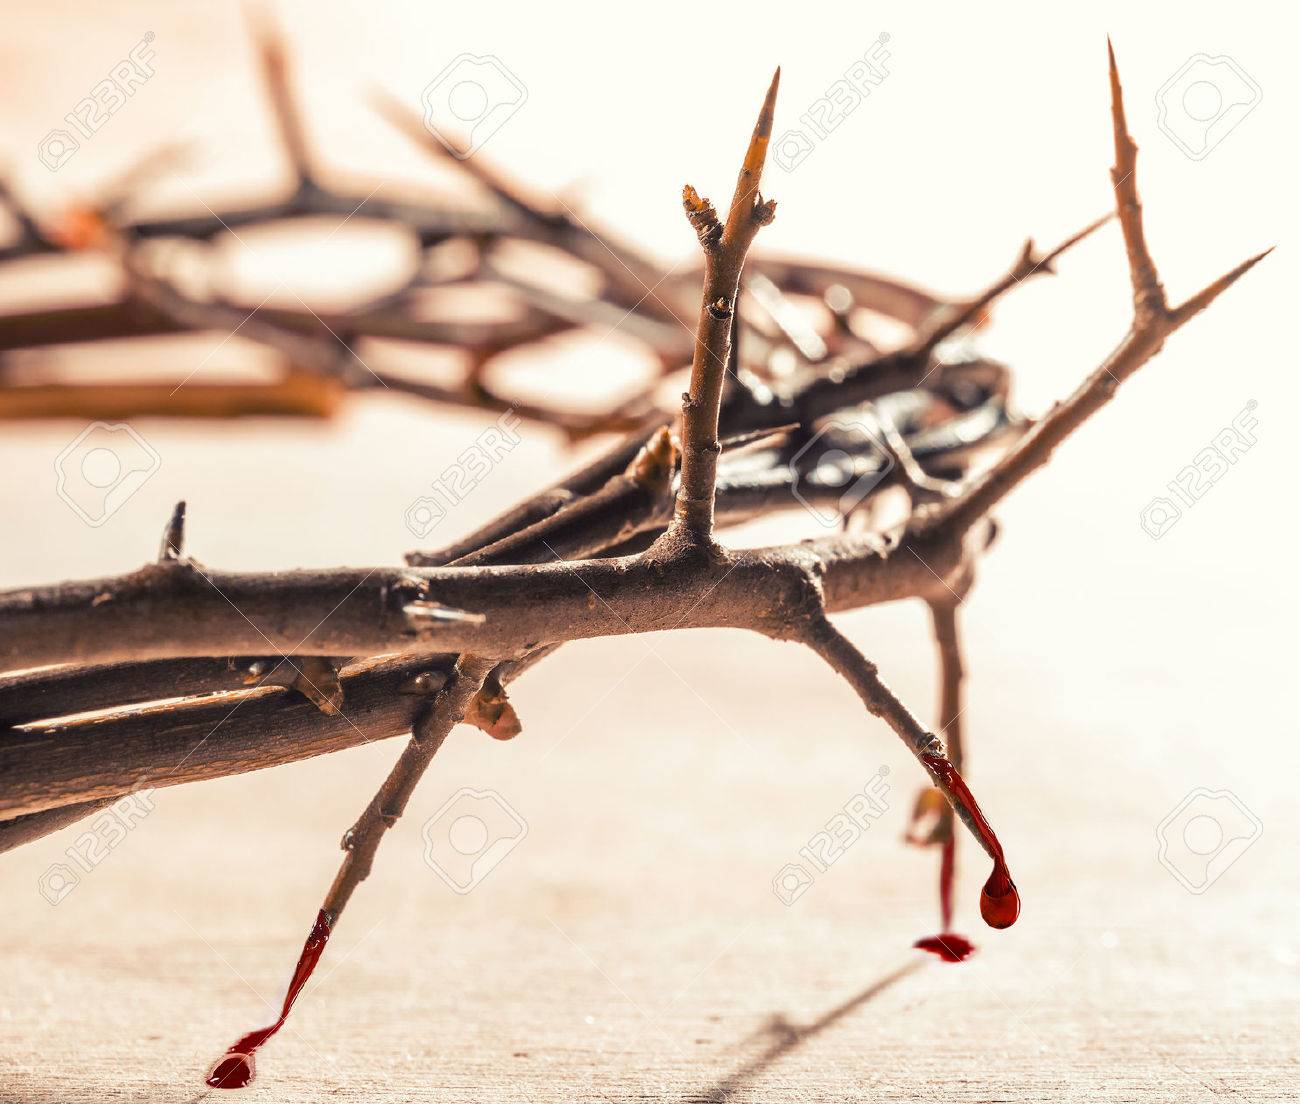 53470705-crown-of-thorns-with-blood-dripping-christian-concept-of-suffering-